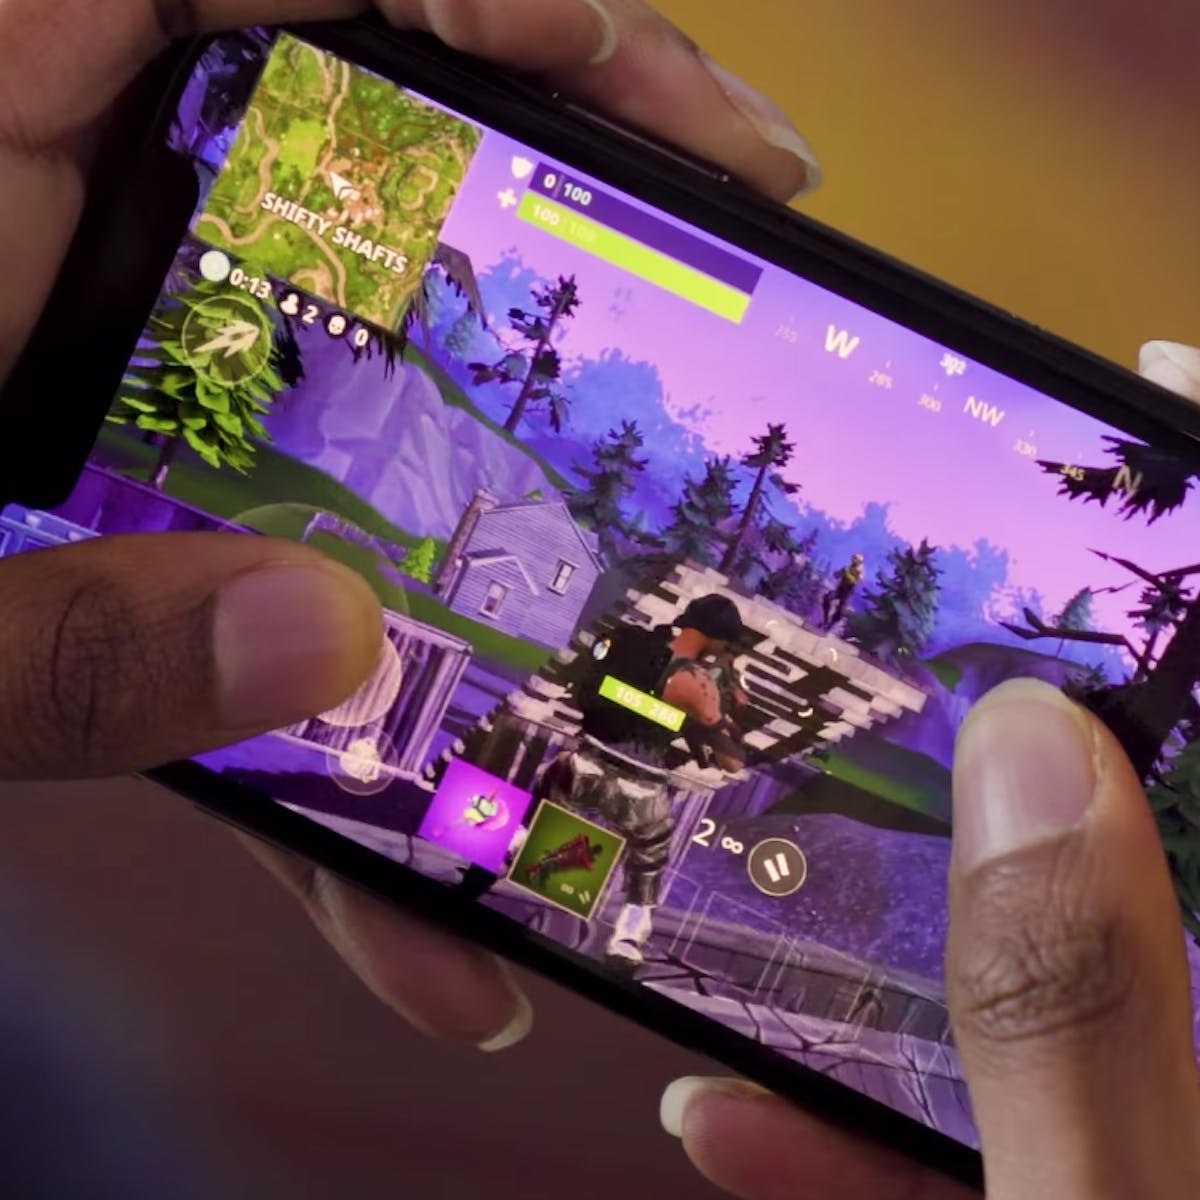 pubg sues fortnite over copyright claims but do they have a case - pubg sue fortnite